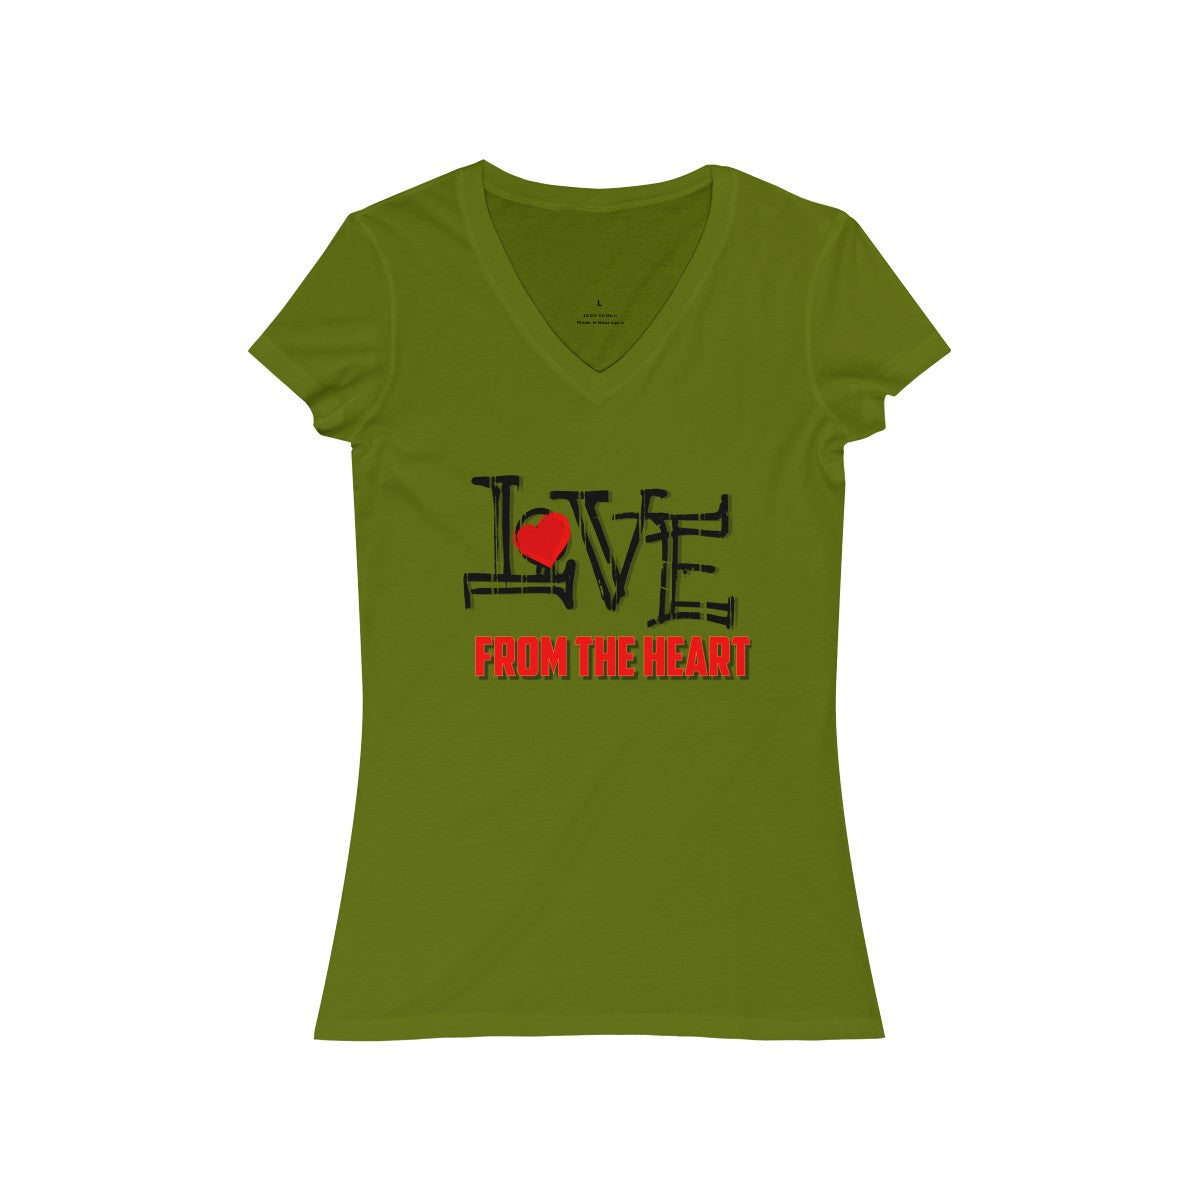 Women's Jersey Short Sleeve V-Neck Tee - Love From the Heart